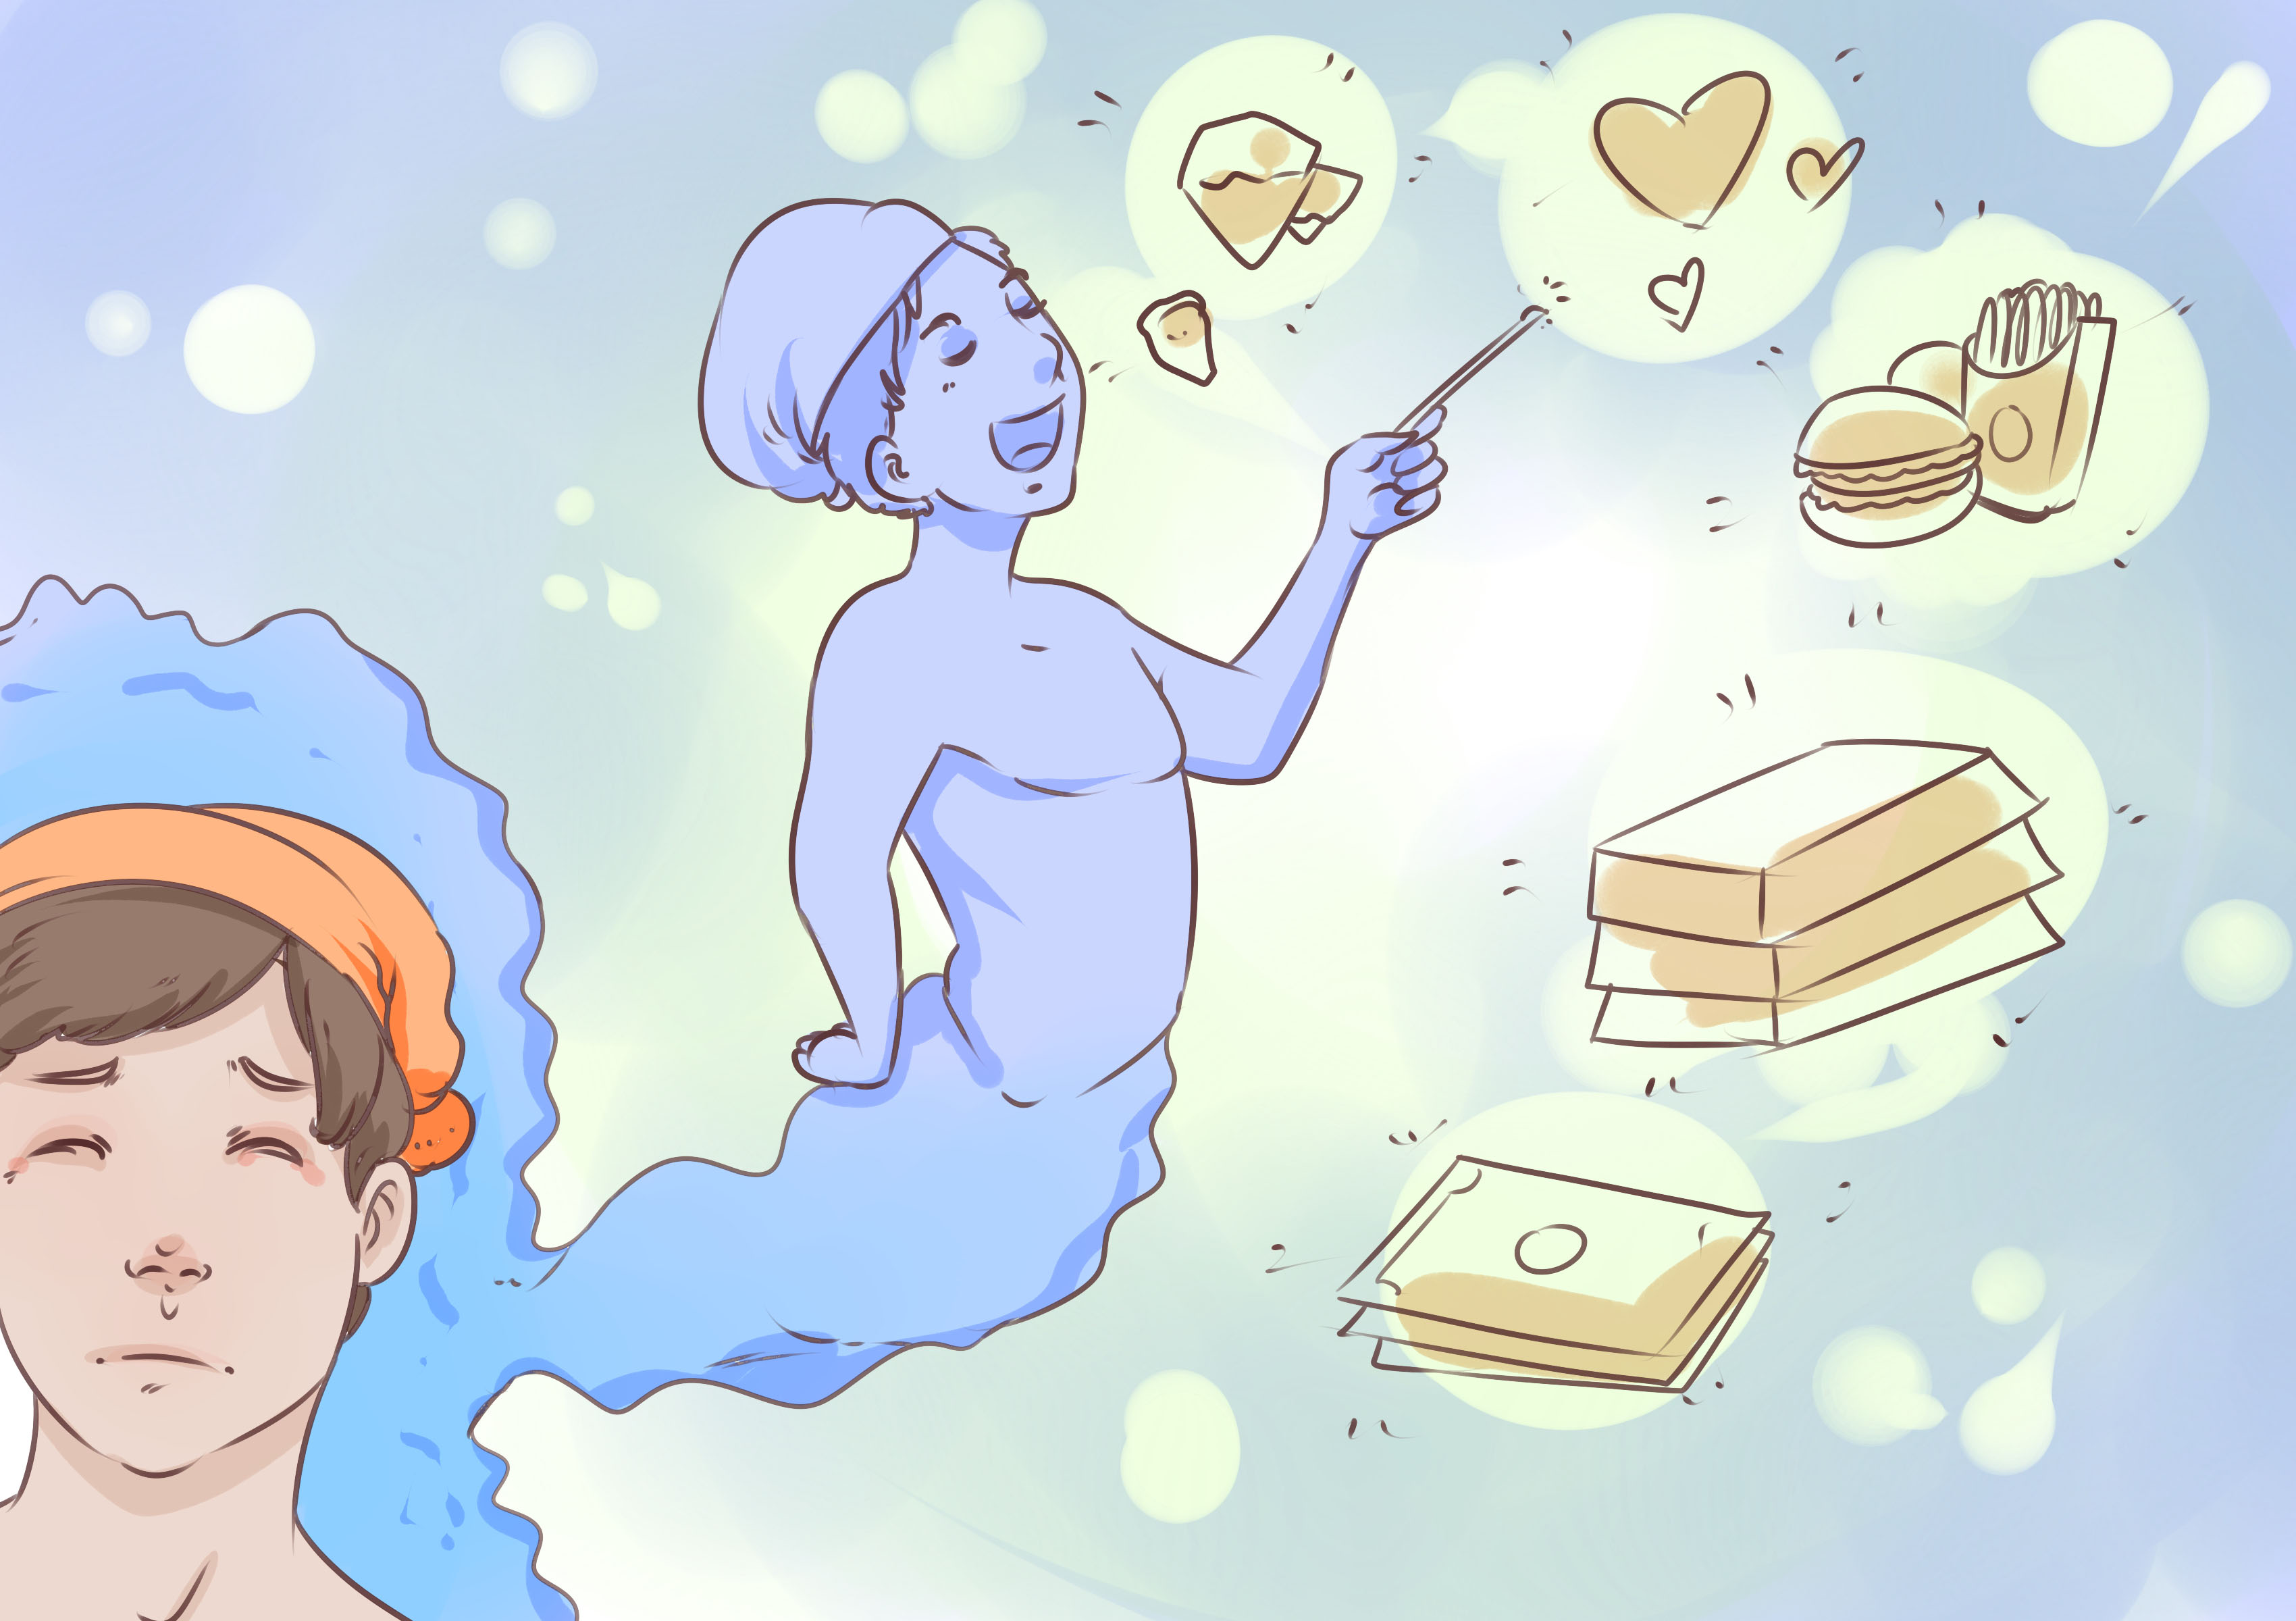 MEANING OF EATING FOOD WITH STRANGERS IN THE DREAM